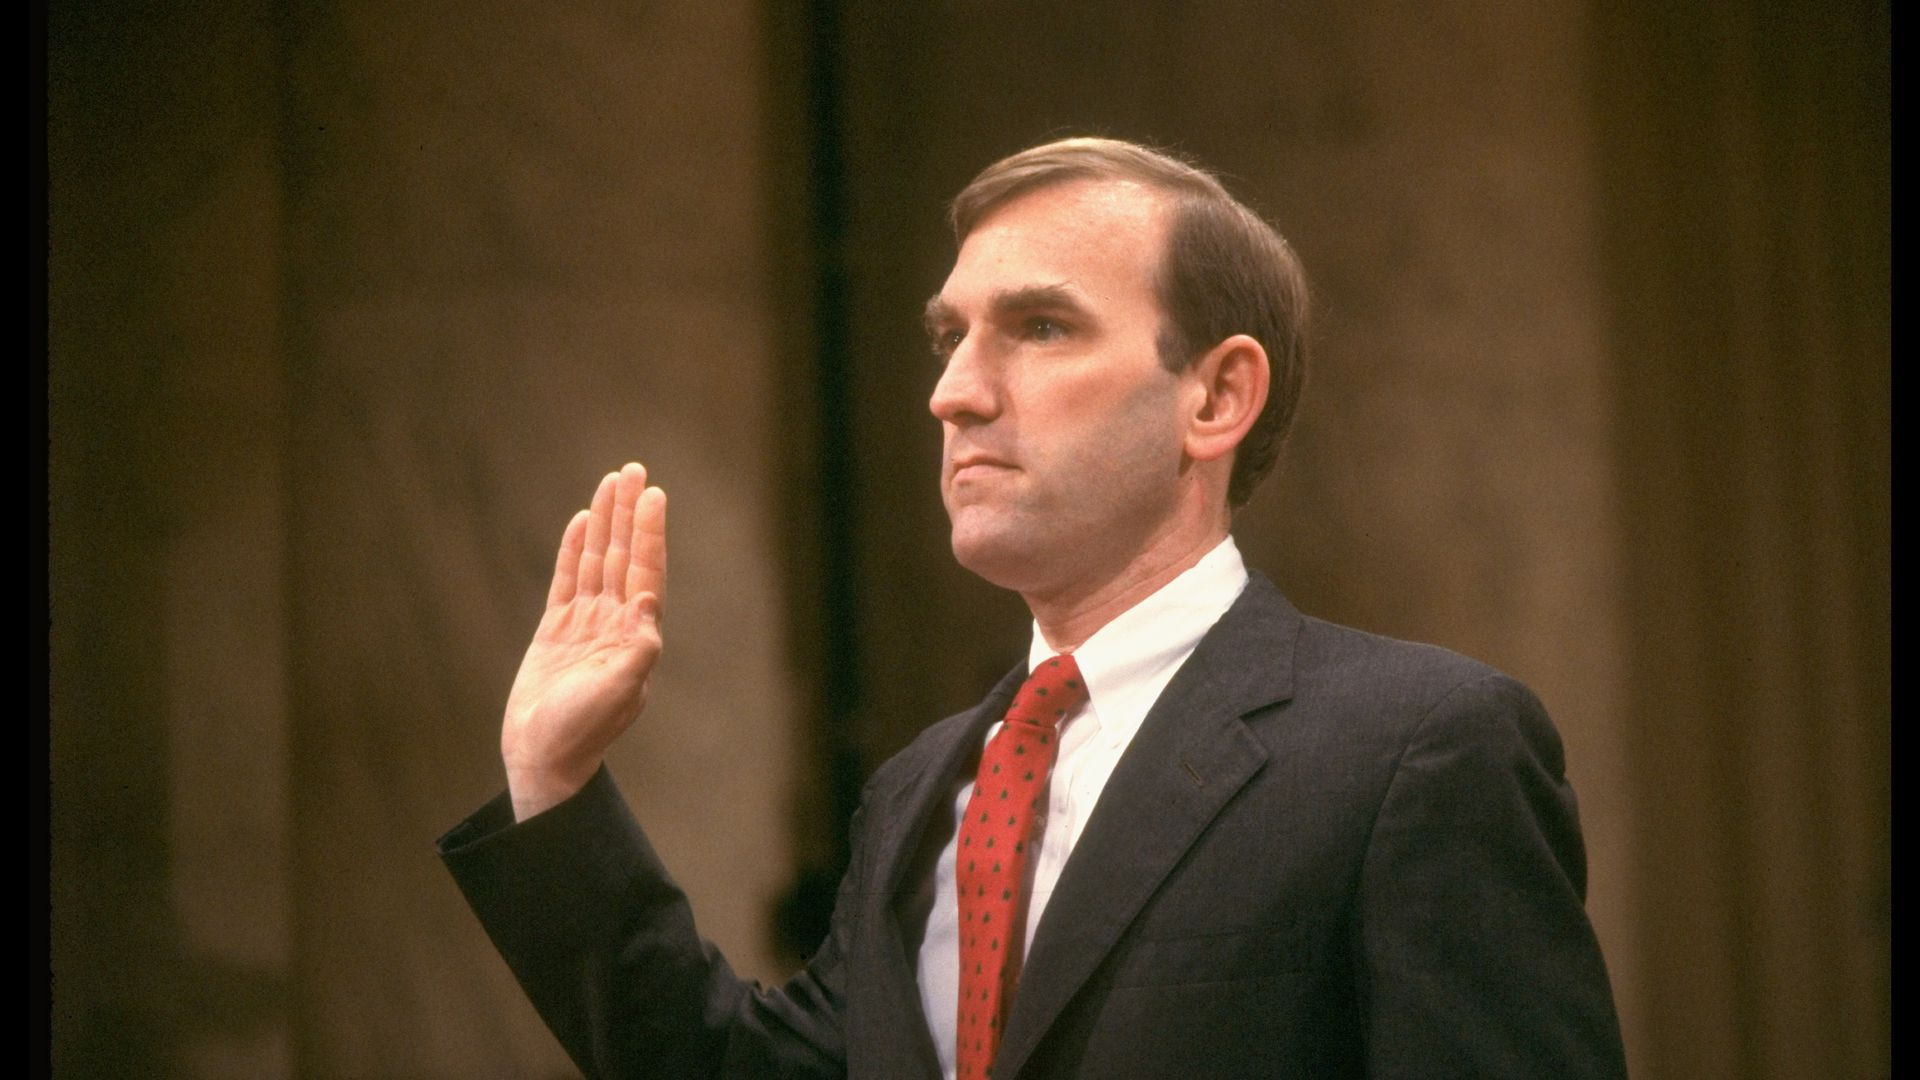 The Tragic Life of the War Criminal Elliott Abrams